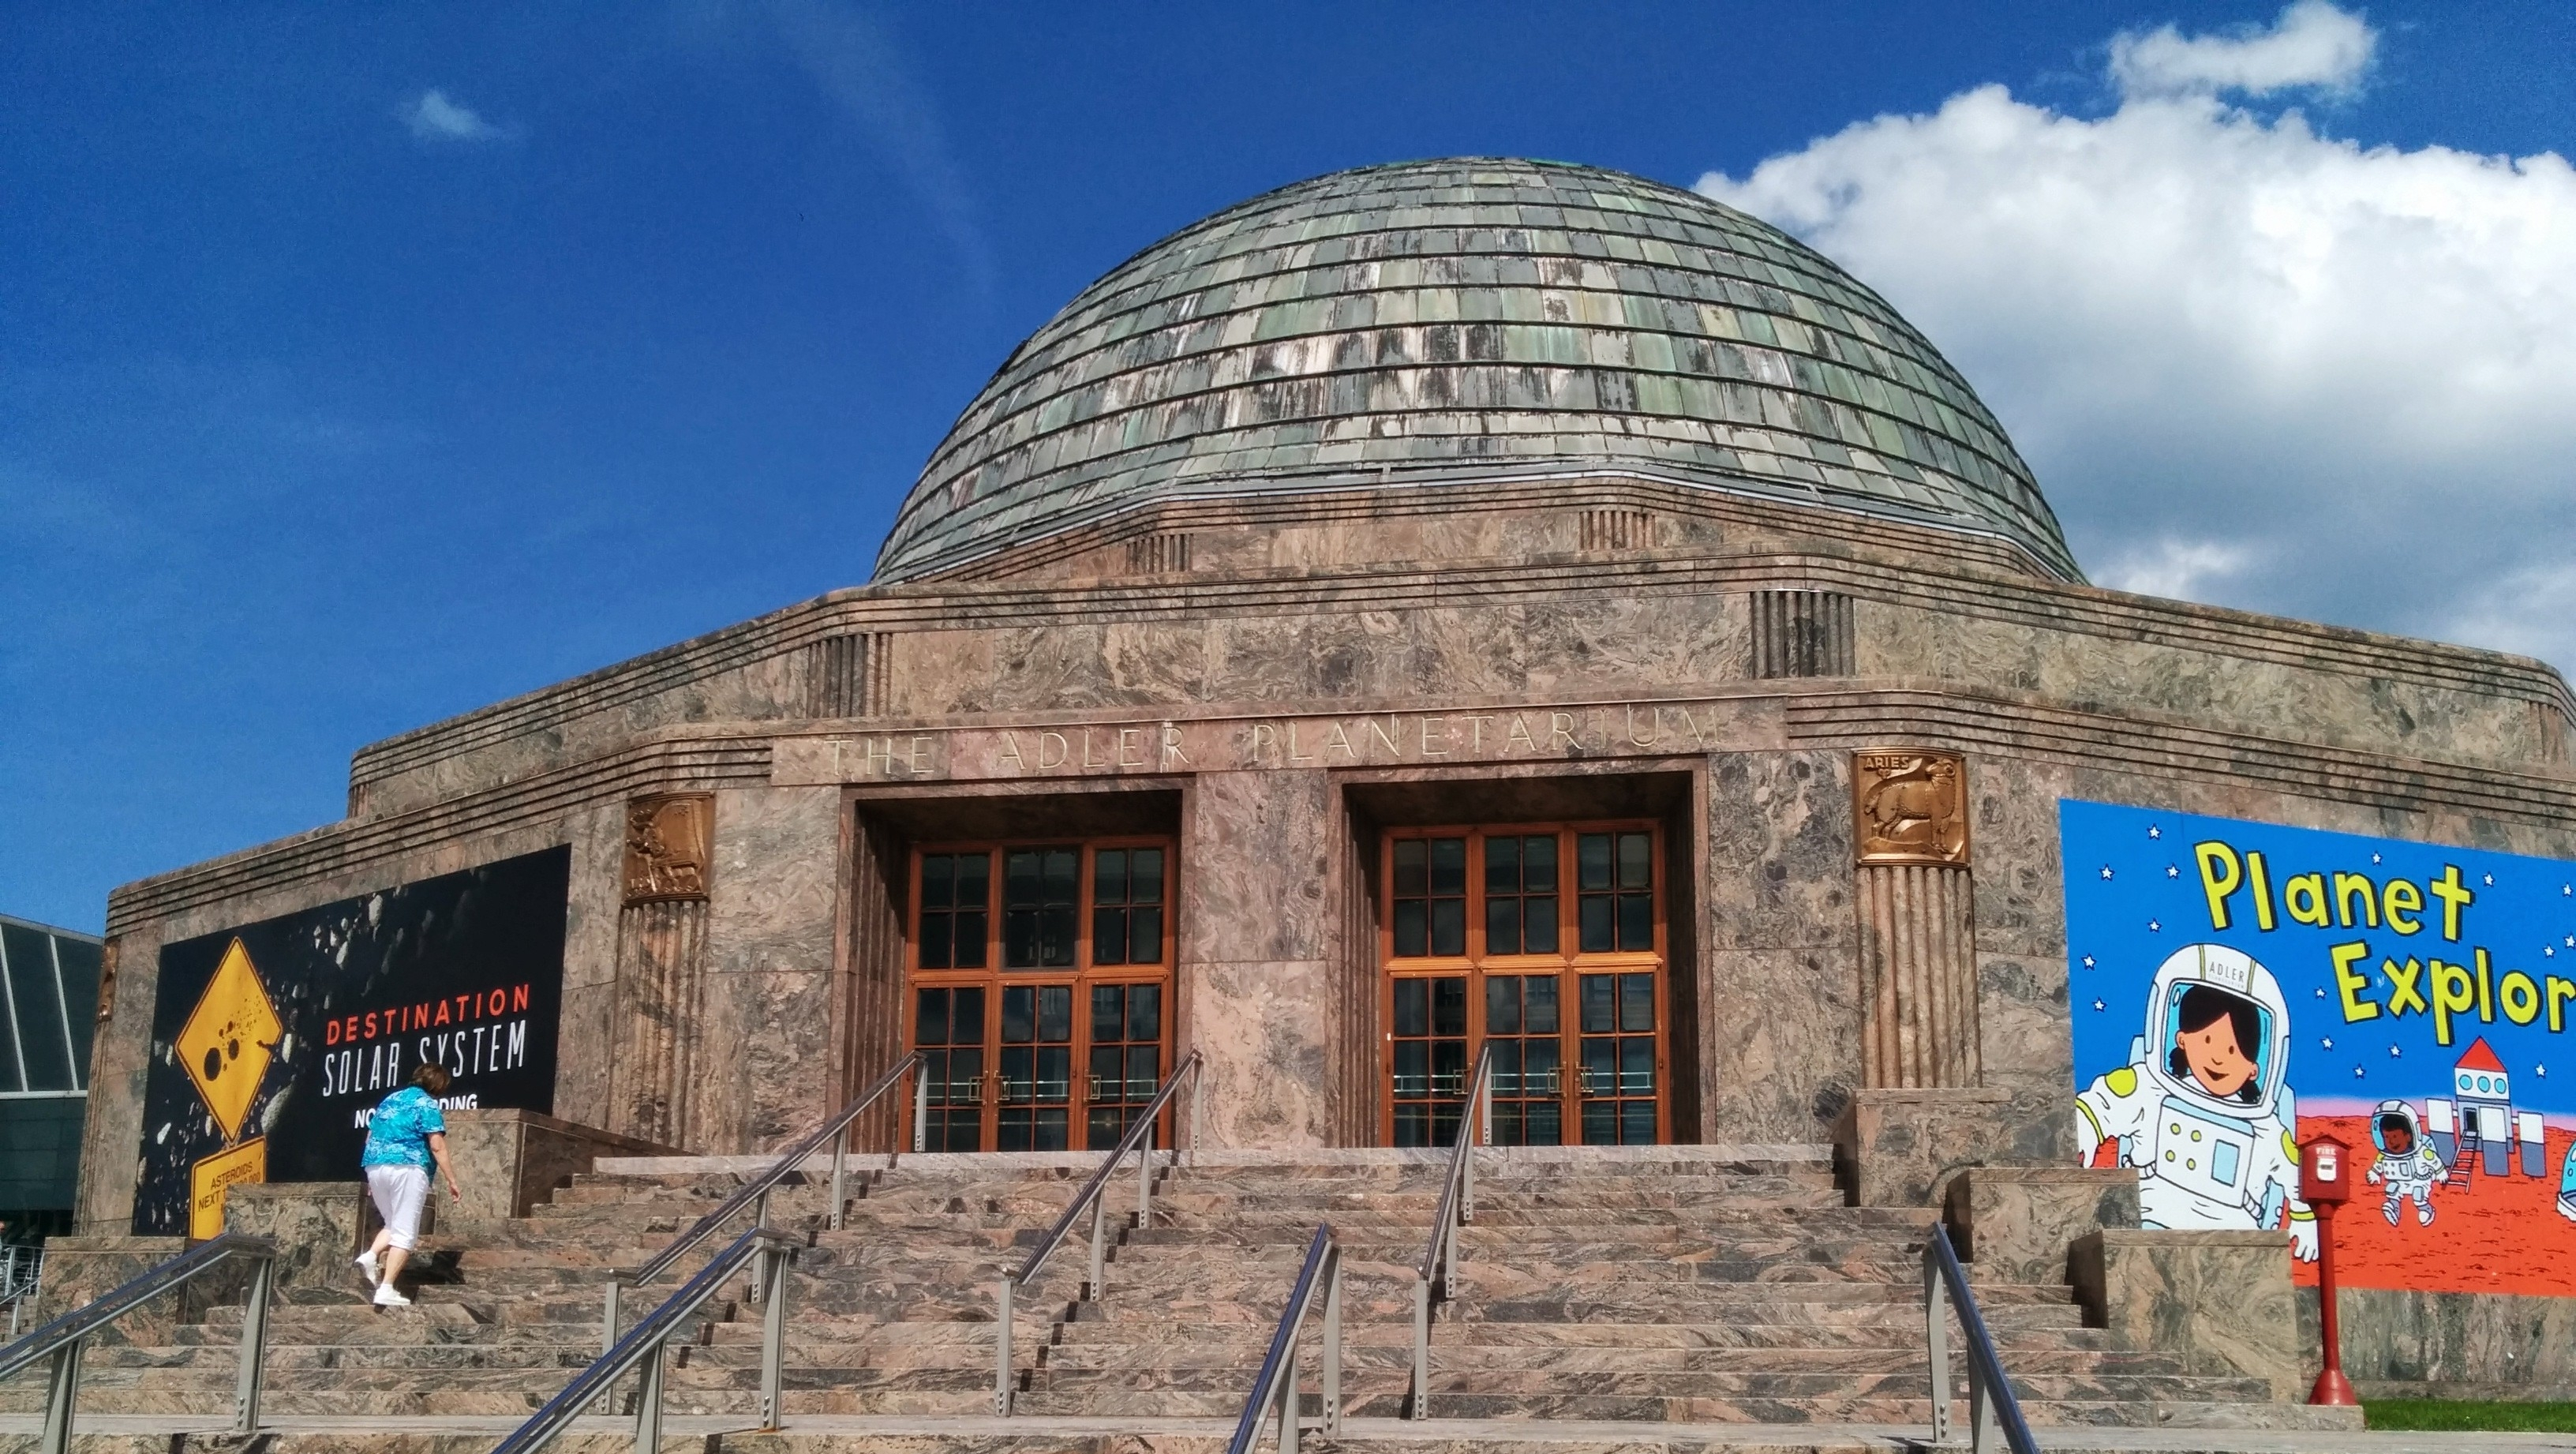 The entrance of the Adler Planetarium